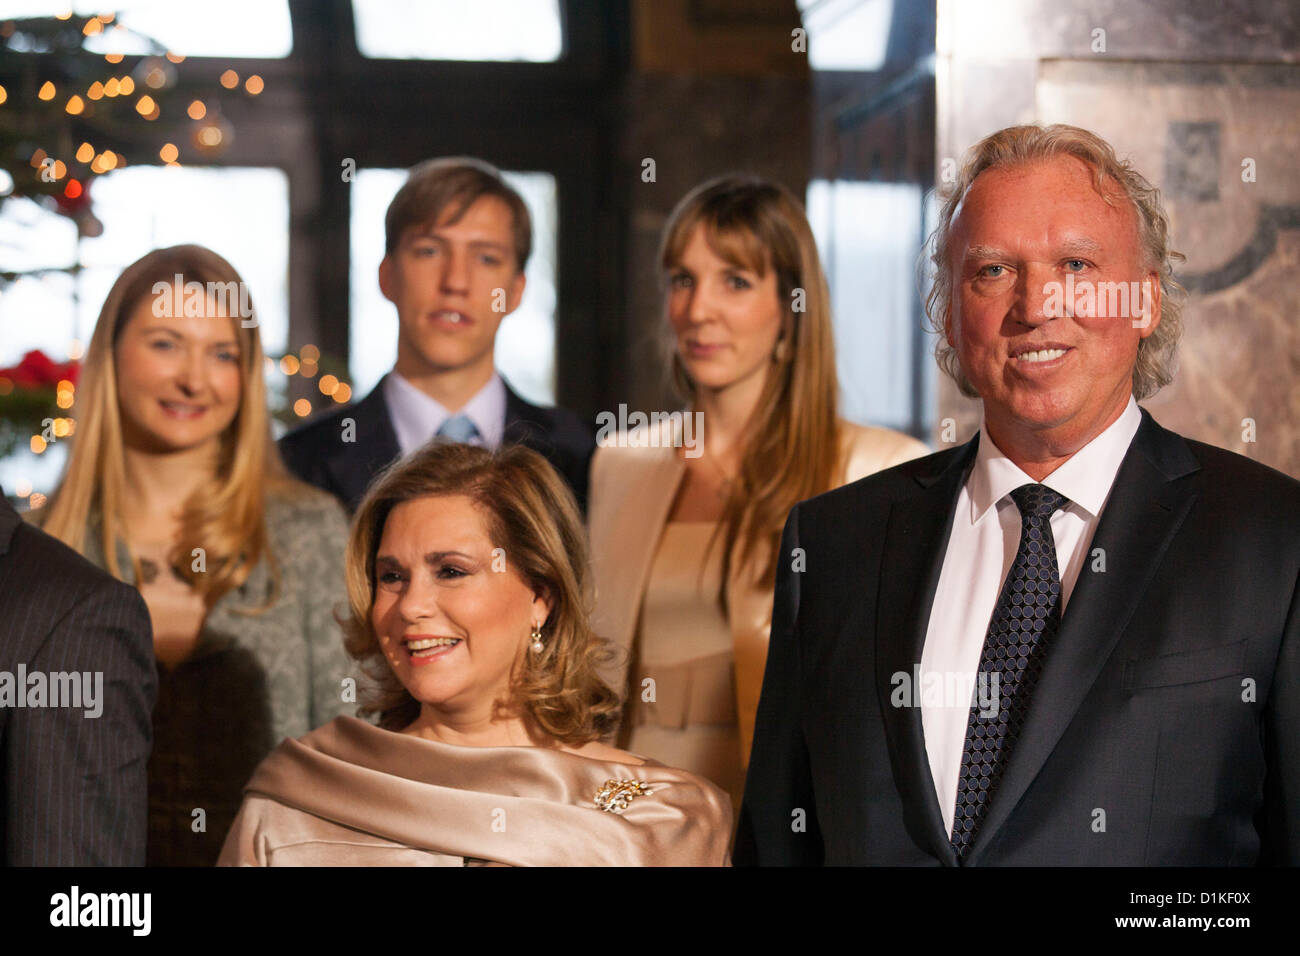 Luxembourg. 27th Dec, 2012. Family Meeting of Prince  Felix of Luxembourg with his bride to be Claire Lademacher - Stock Image